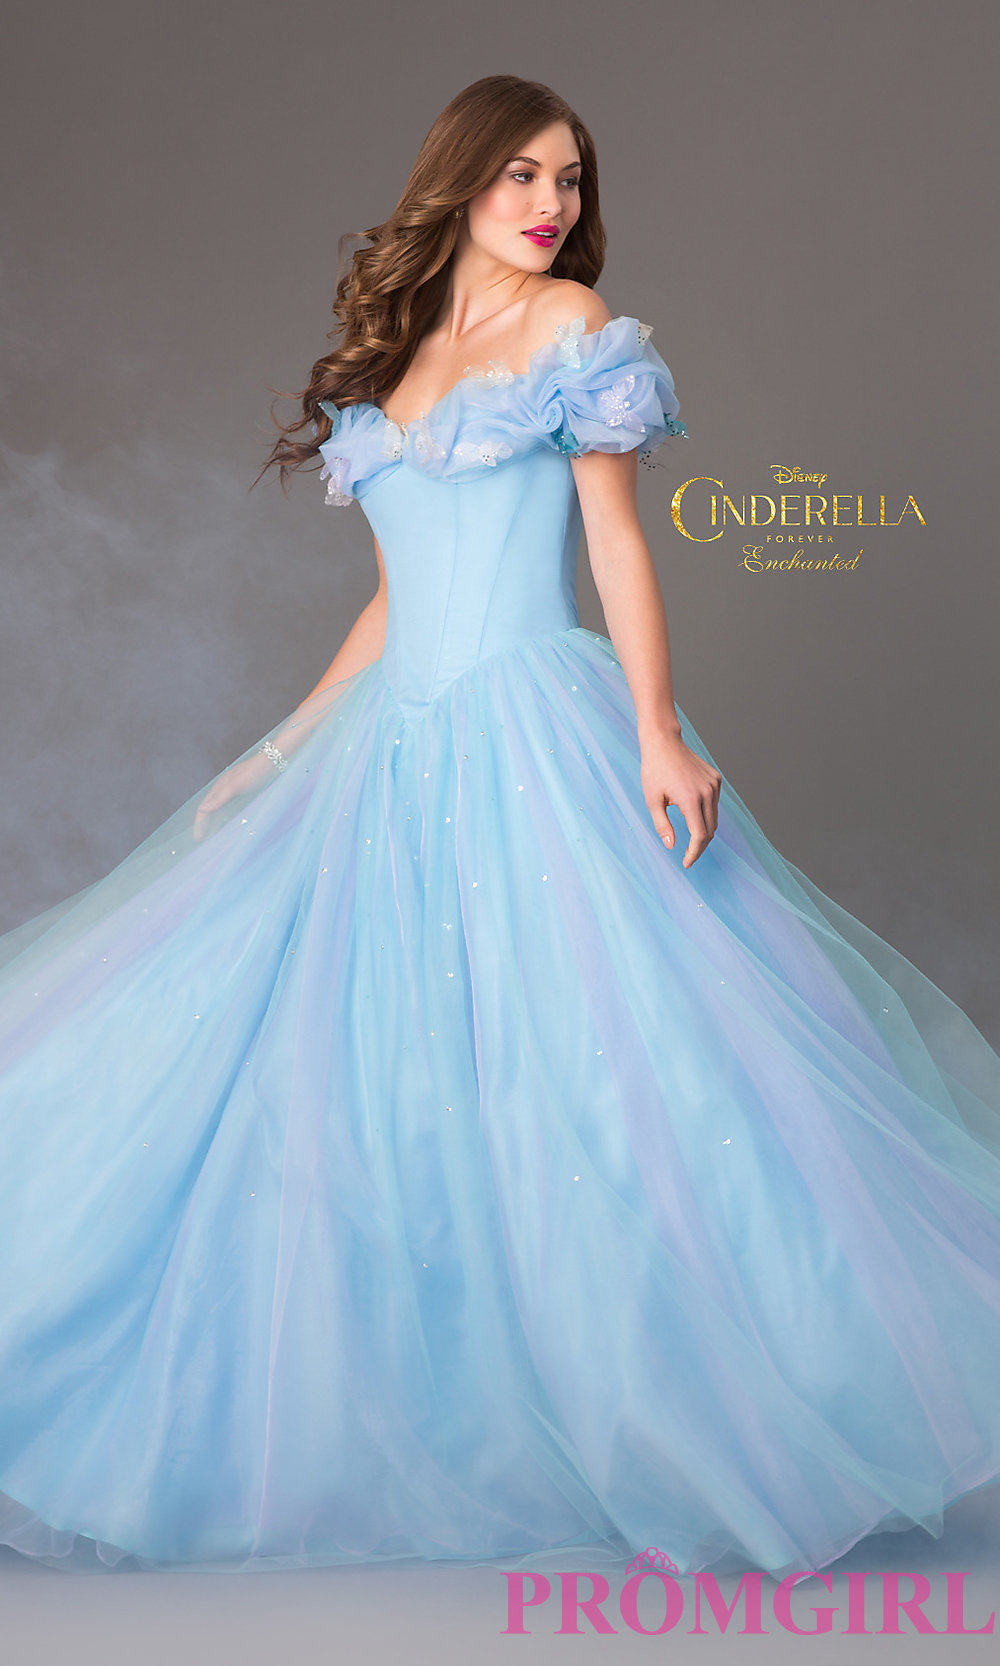 Disney Cinderella Forever Enchanted Keepsake Gown